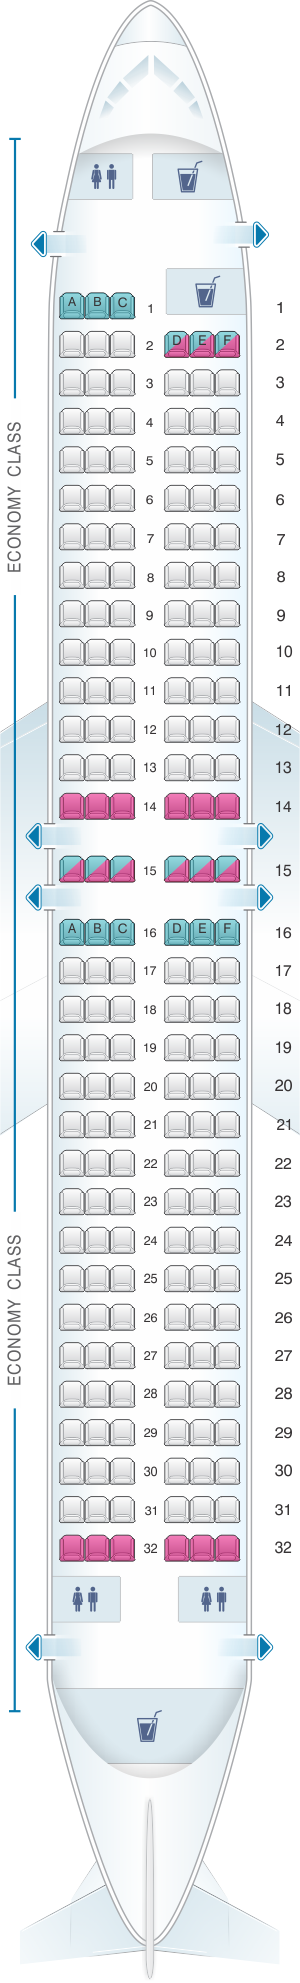 Seat map for TUI Boeing B737-800